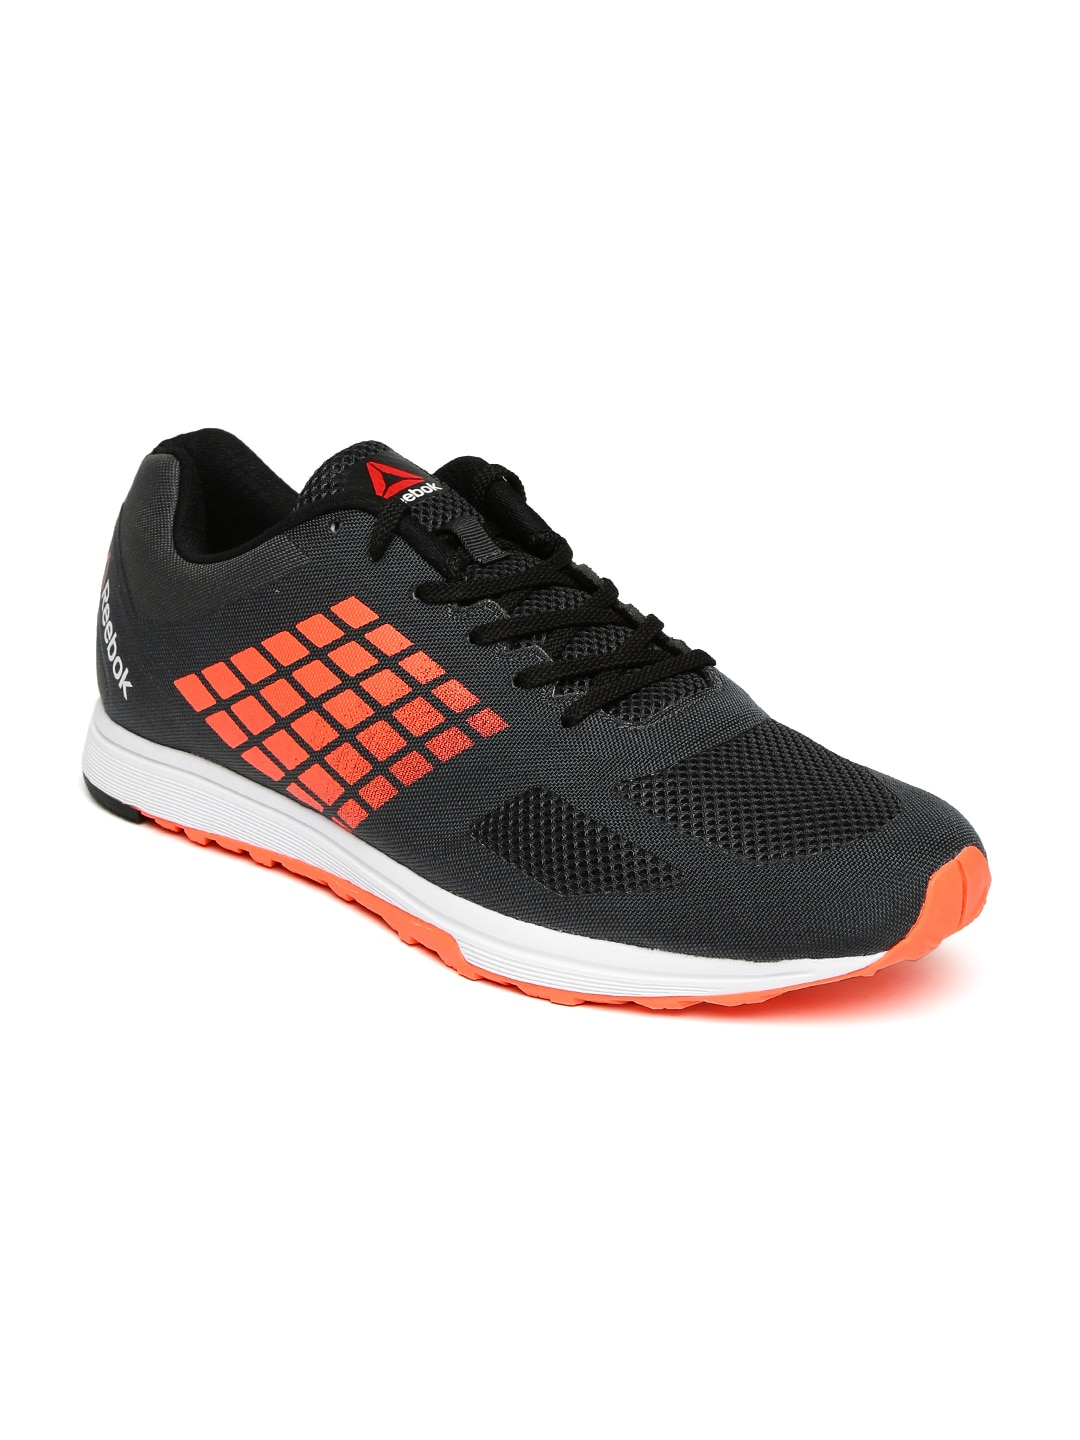 Reebok bd1356 Men Charcoal Grey Hexalite X Glide Running Shoes ... fc0708a01